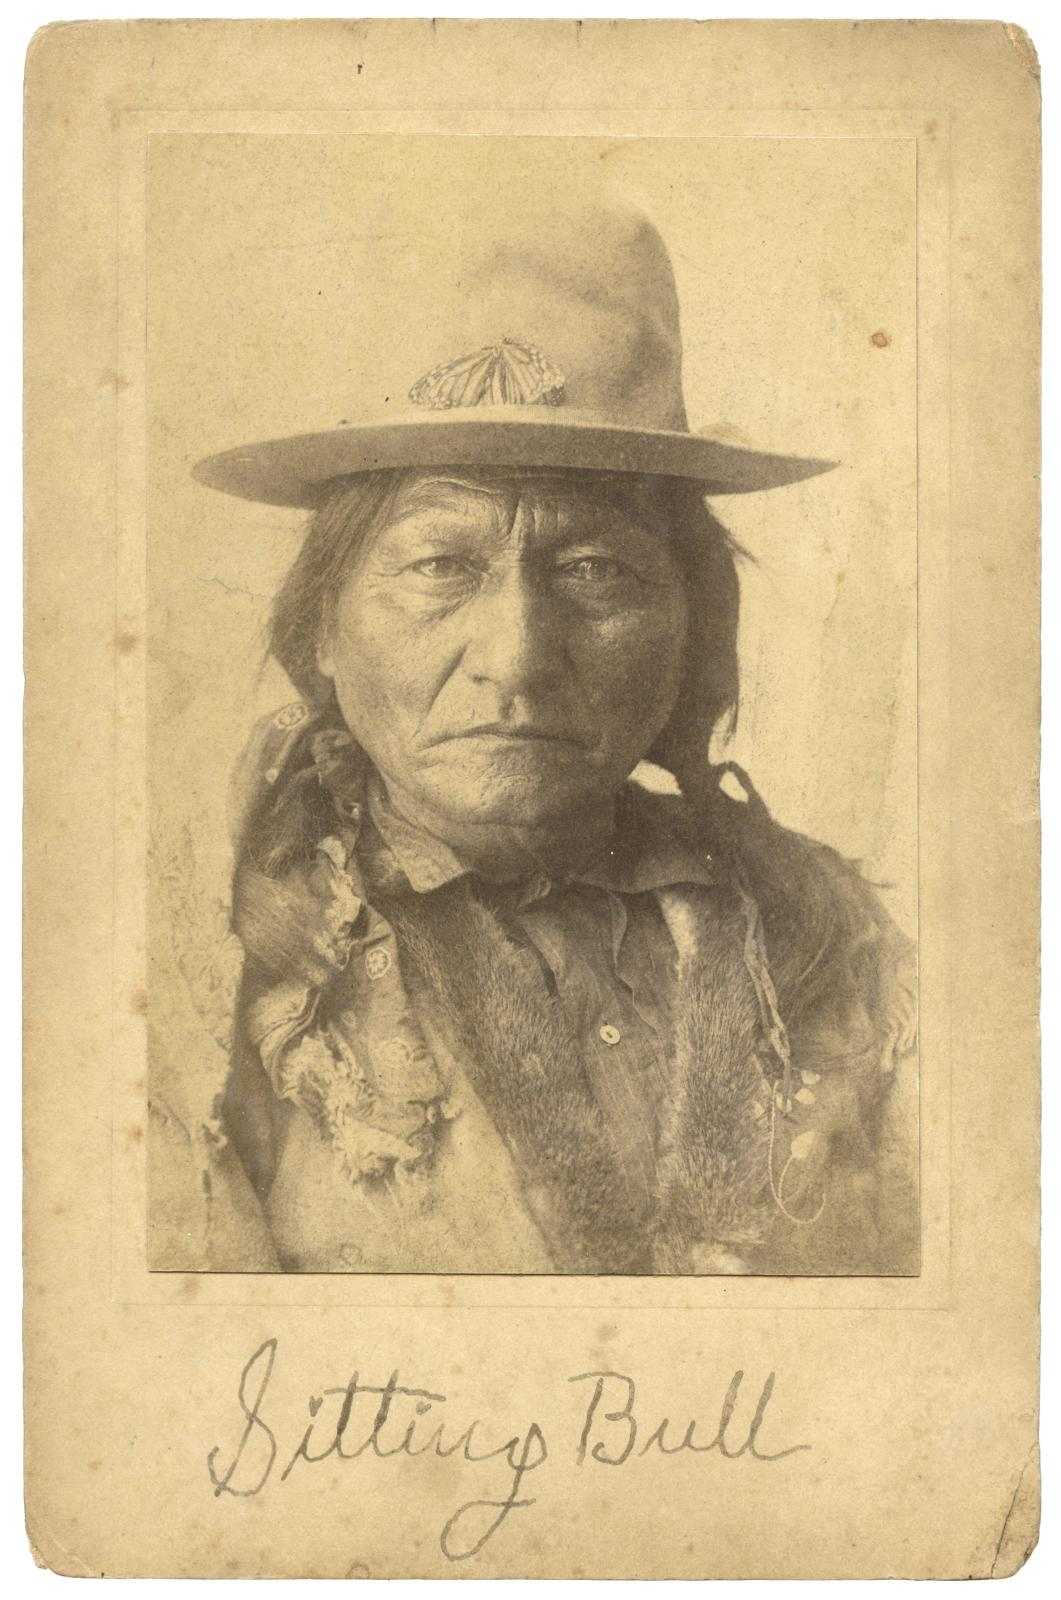 Sitting Bull (ca. 1831-1890), portrait of the Amerindian chief signed by Buffalo Bill, ca. 1885, 16.5 x 10.7 cm (detail).